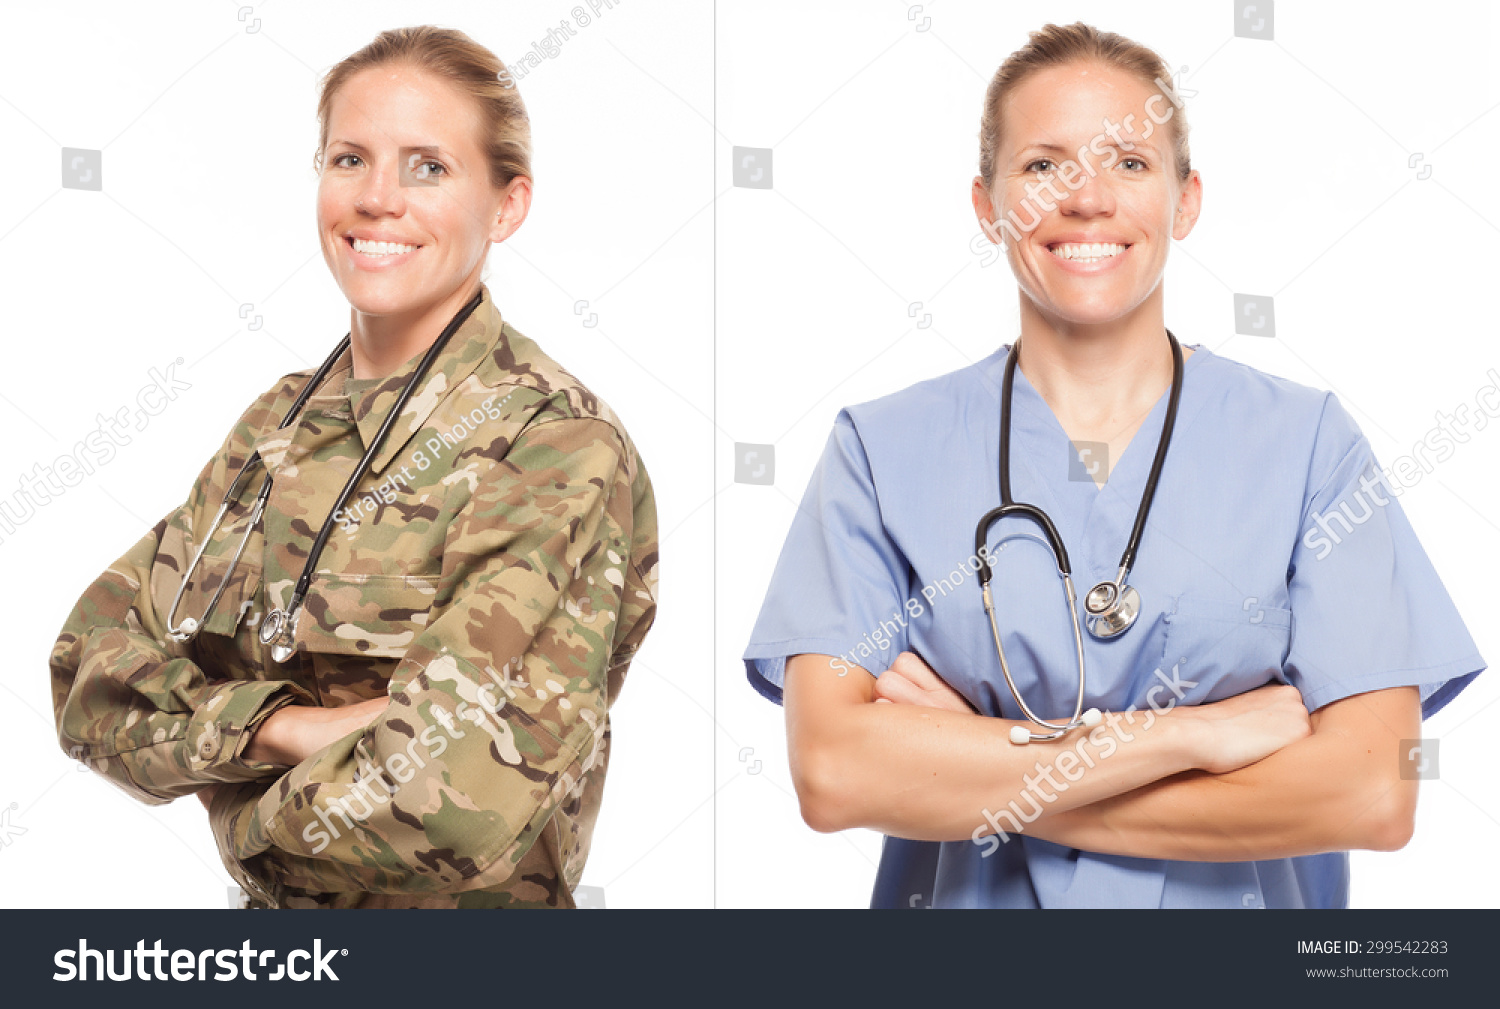 veteran ier military transition civilian workplace stock photo veteran ier military transition to civilian workplace female army doctor or nurse in uniform